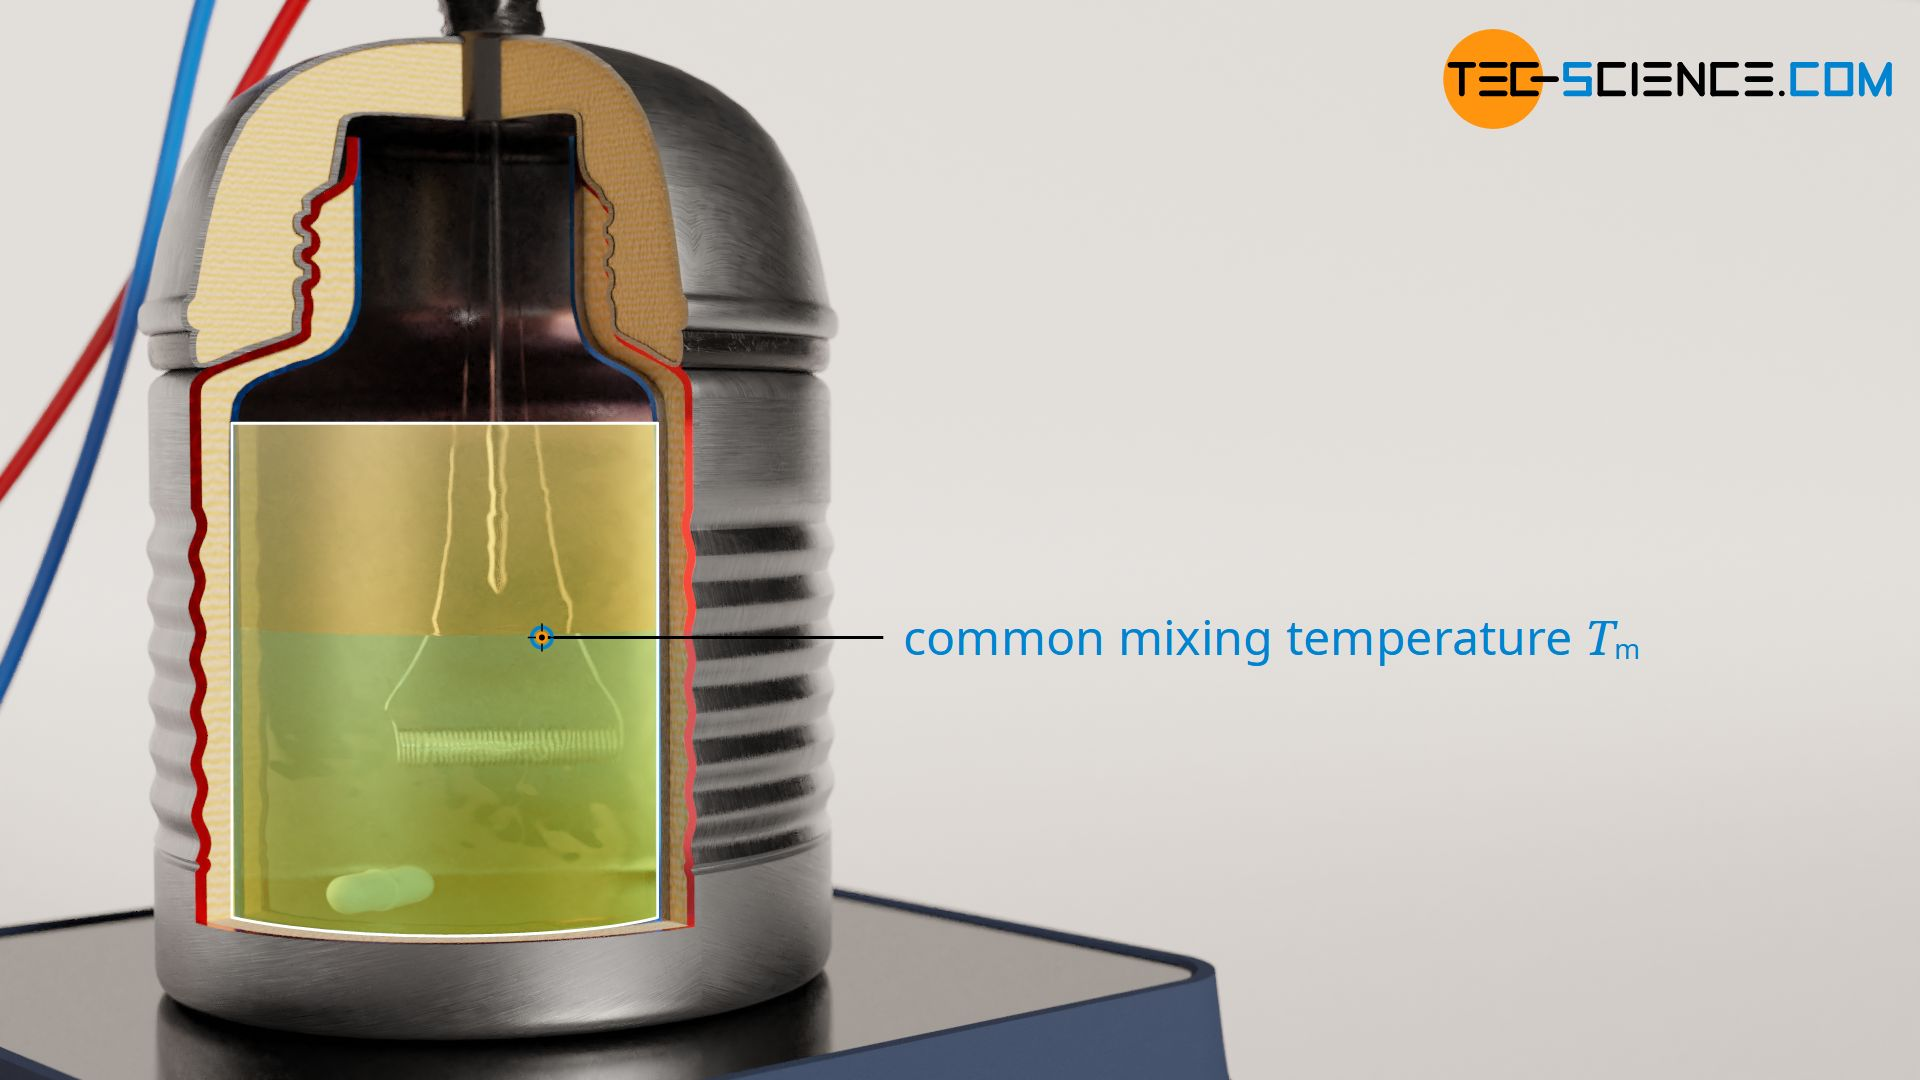 Determination of the heat capacity of a calorimeter (water value) based on the mixing temperature.